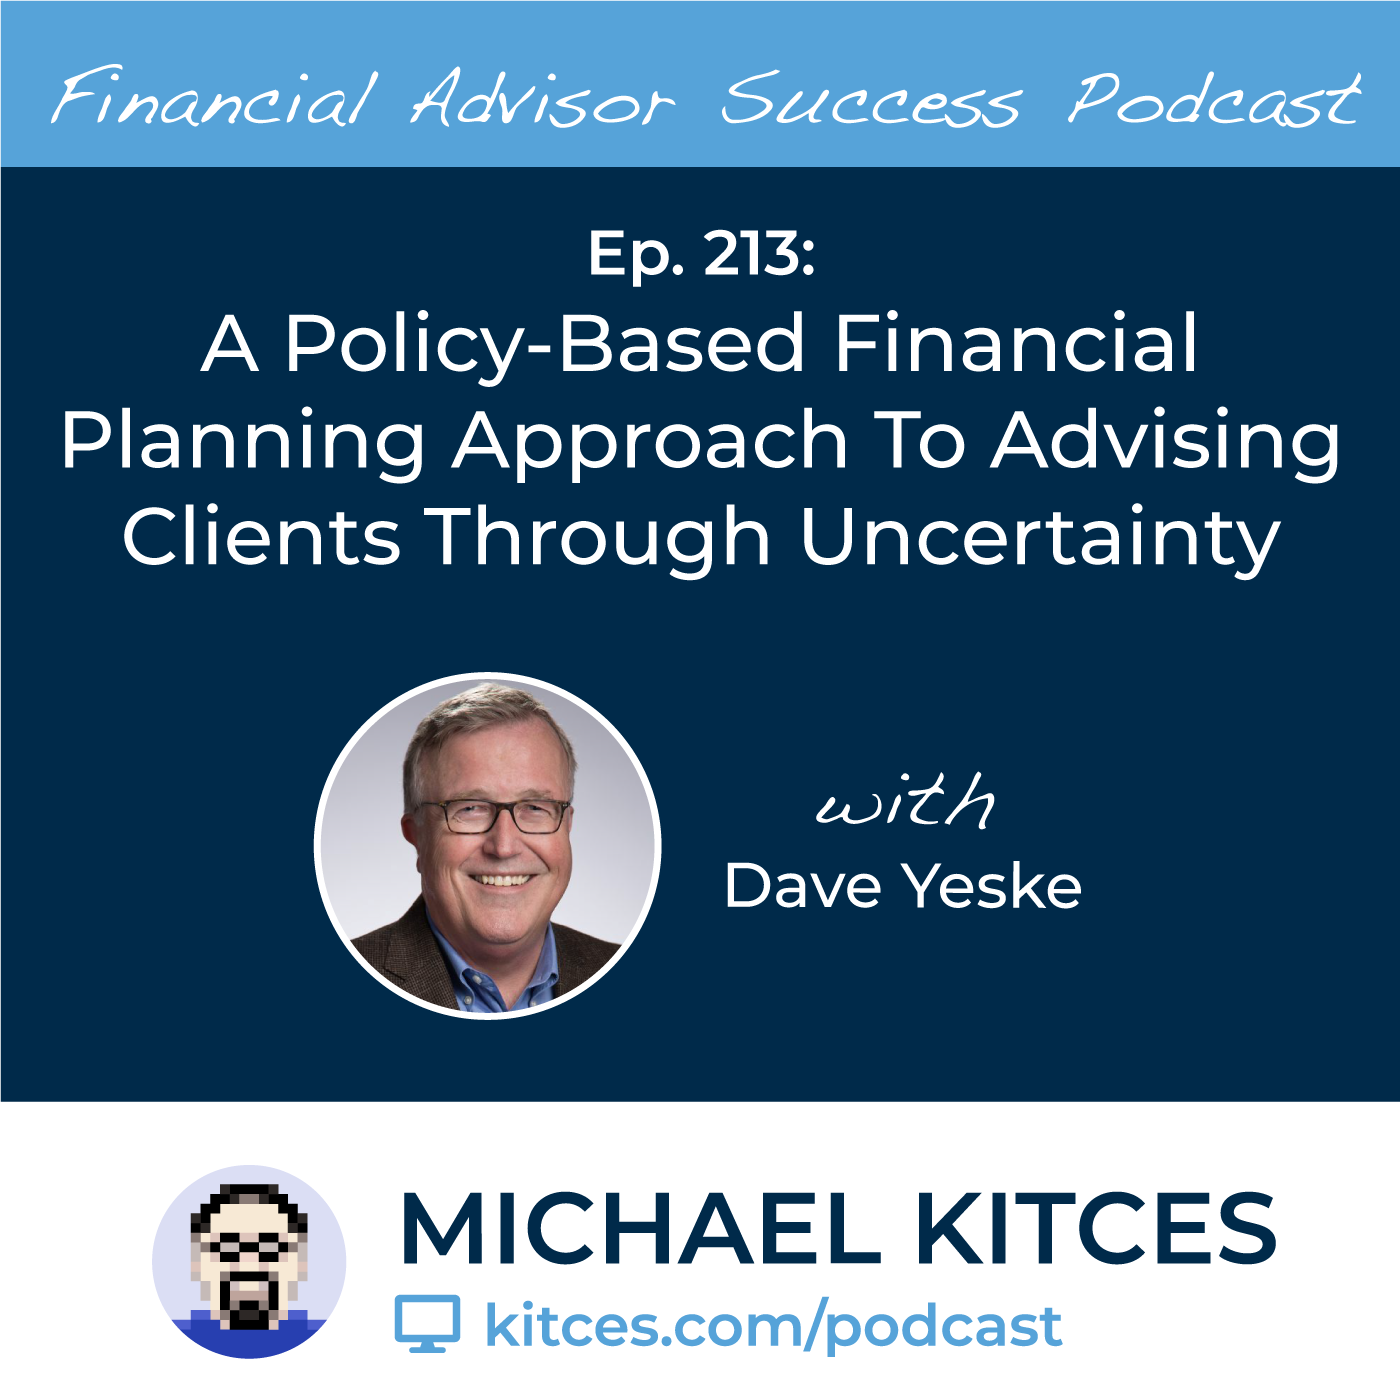 Ep 213: A Policy-Based Financial Planning Approach To Advising Clients Through Uncertainty with Dave Yeske